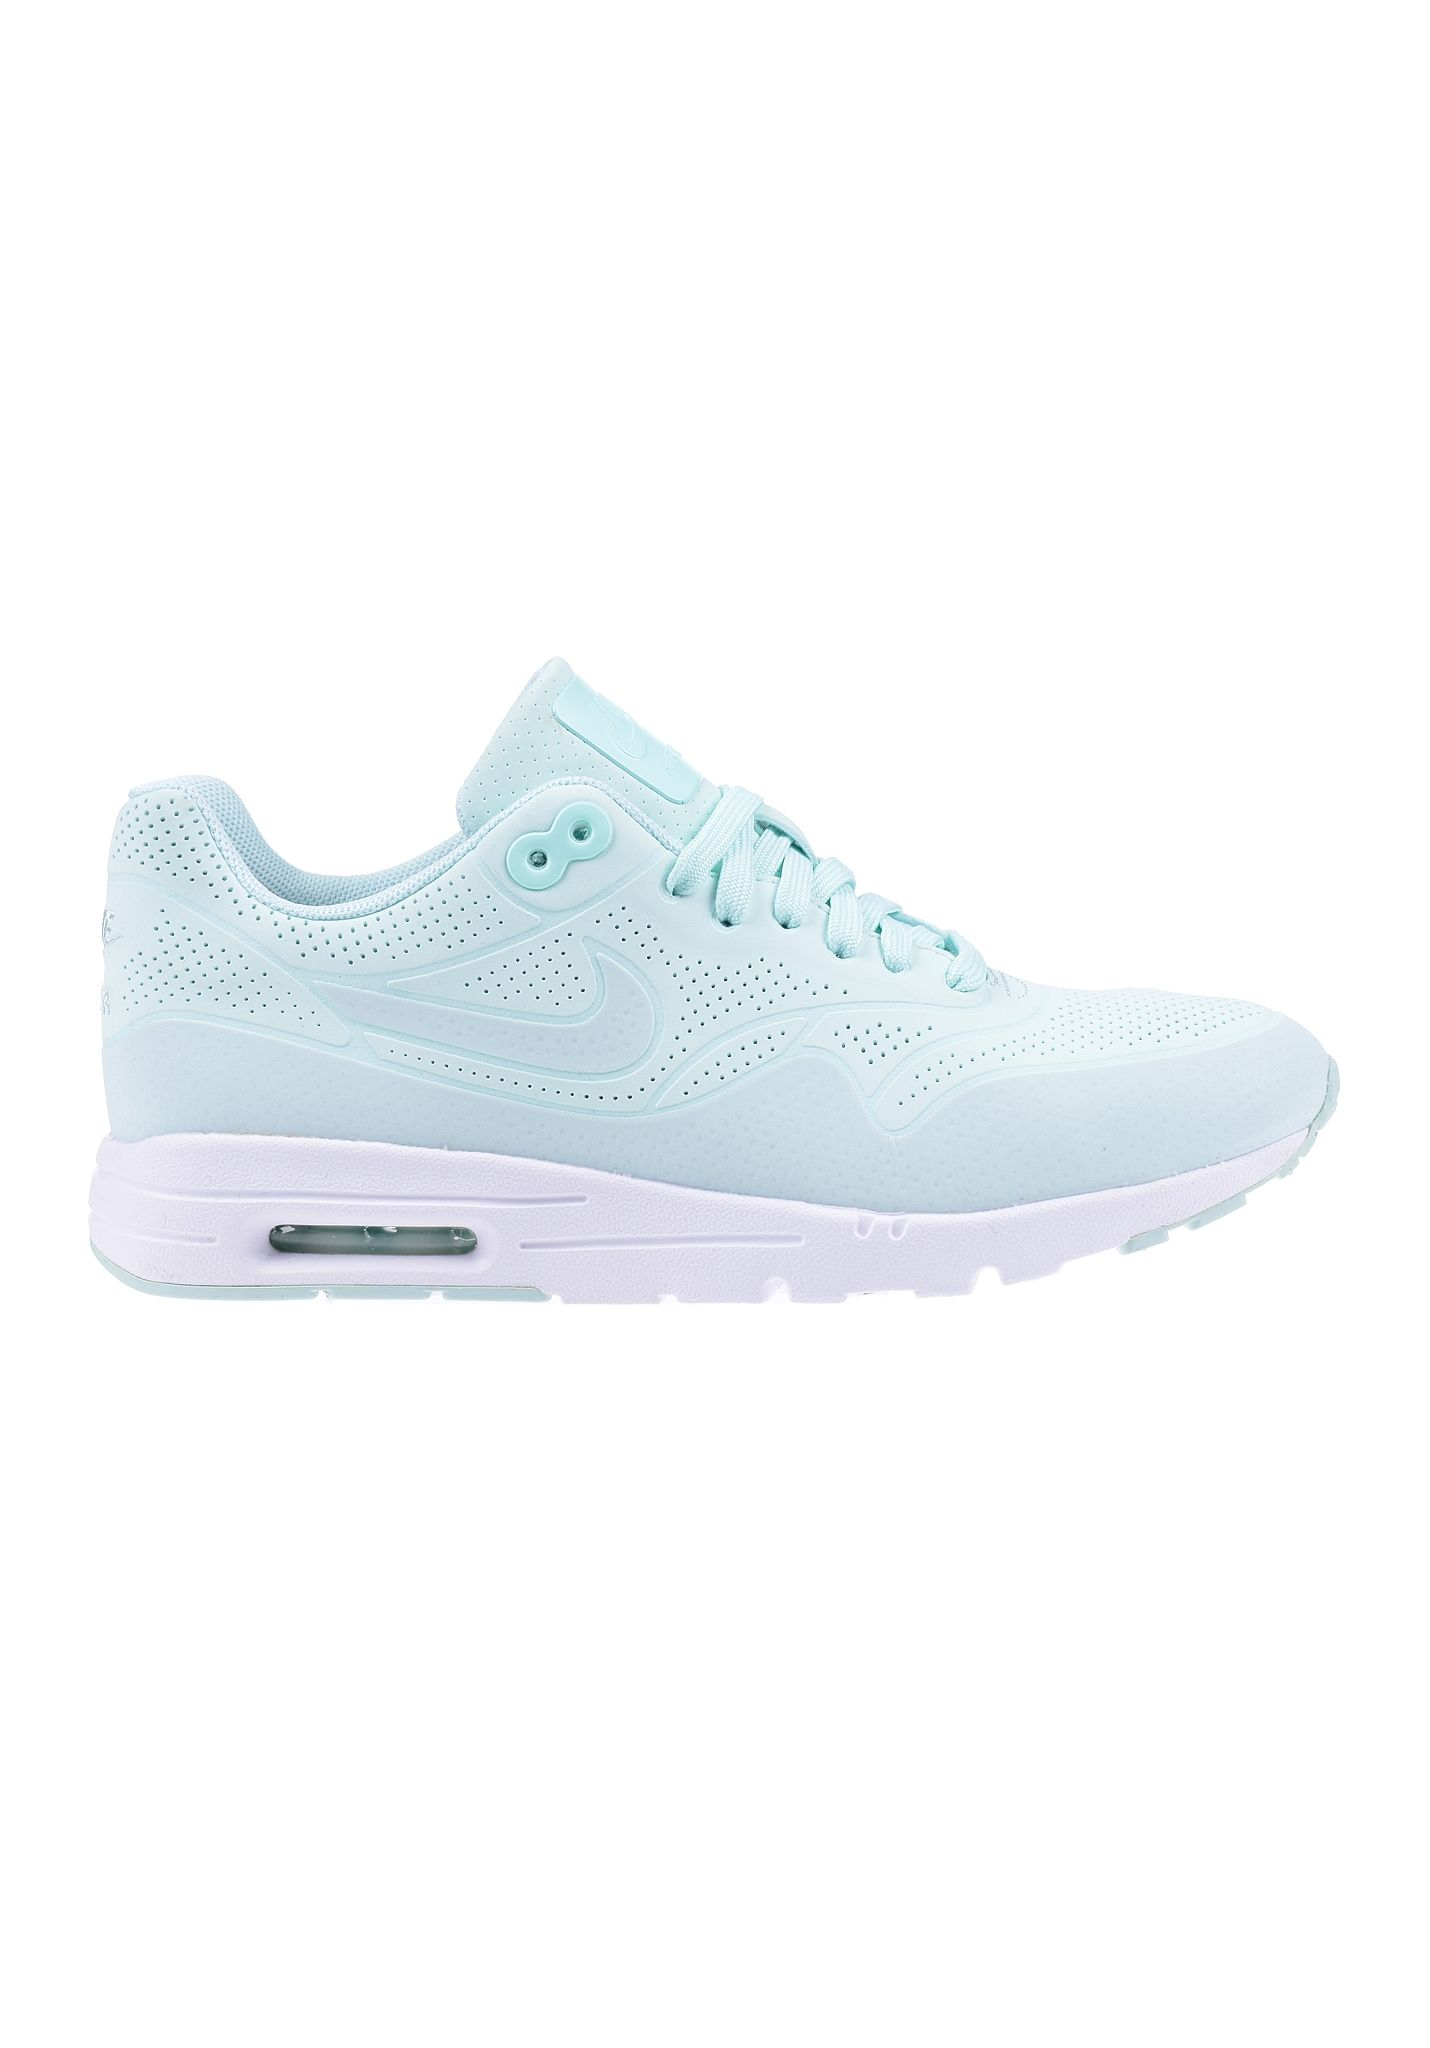 the latest 97b97 7bb57 ... NIKE SPORTSWEAR Air Max 1 Ultra Moire - Sneakers voor Dames - Groen -  Planet Sports ...